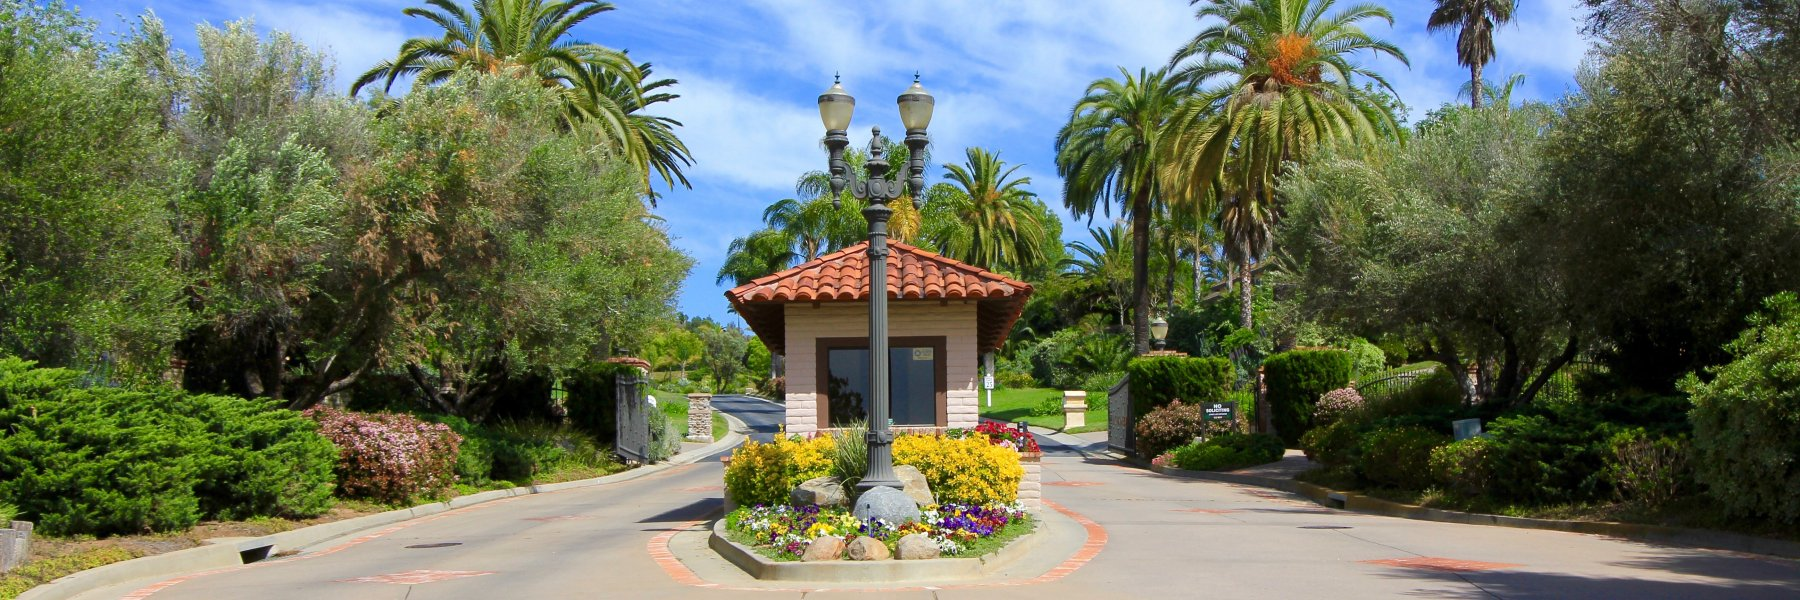 Lake Vista Estates is a community of homes in Bonsall California